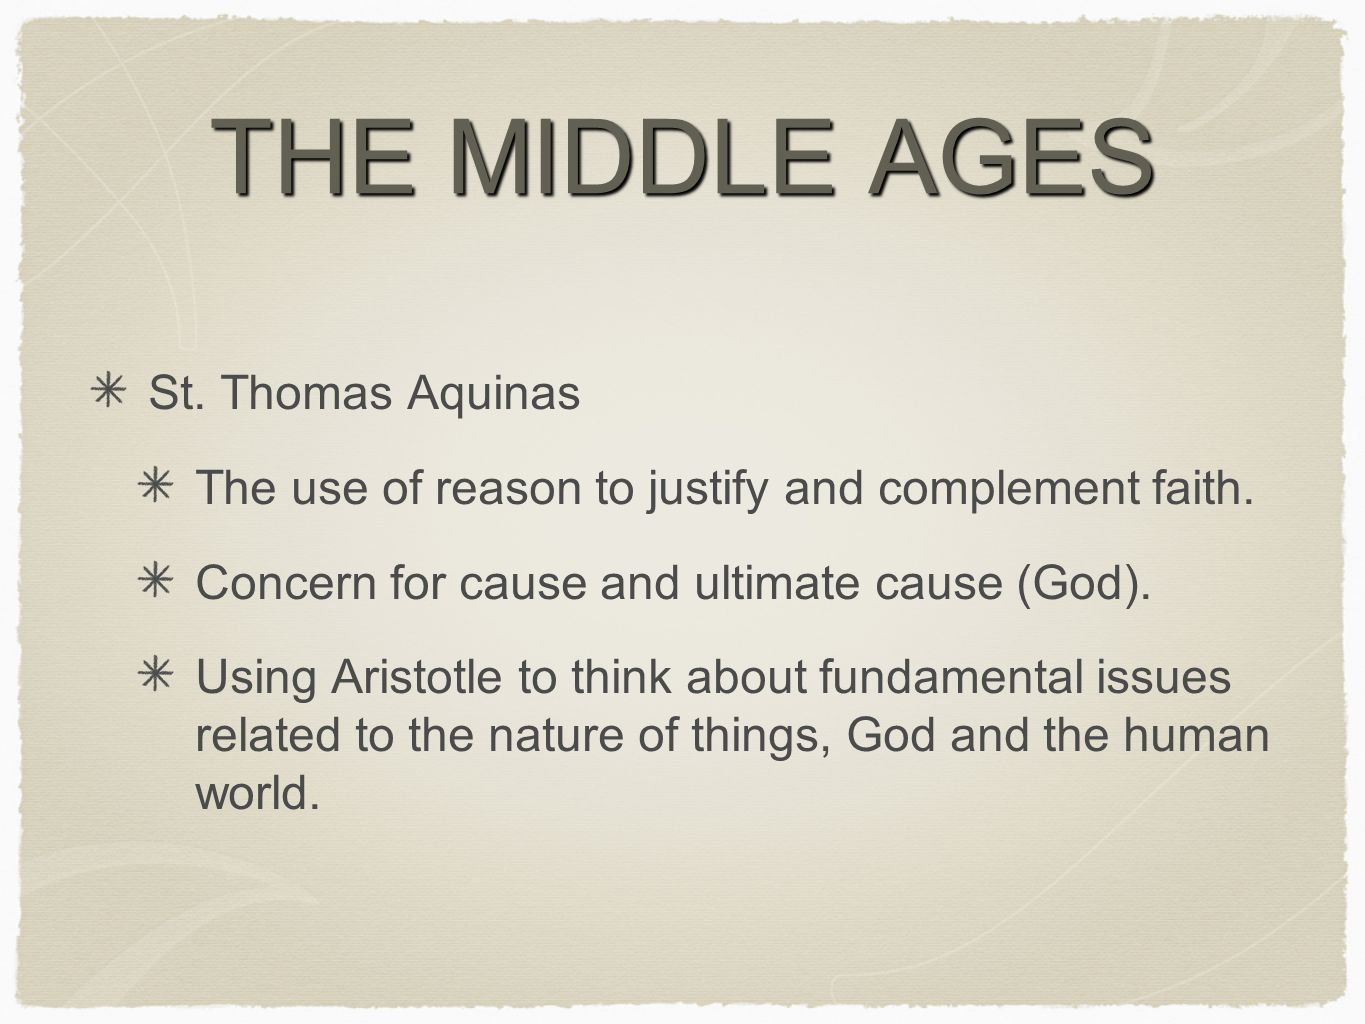 THE MIDDLE AGES St. Thomas Aquinas The use of reason to justify and complement faith.